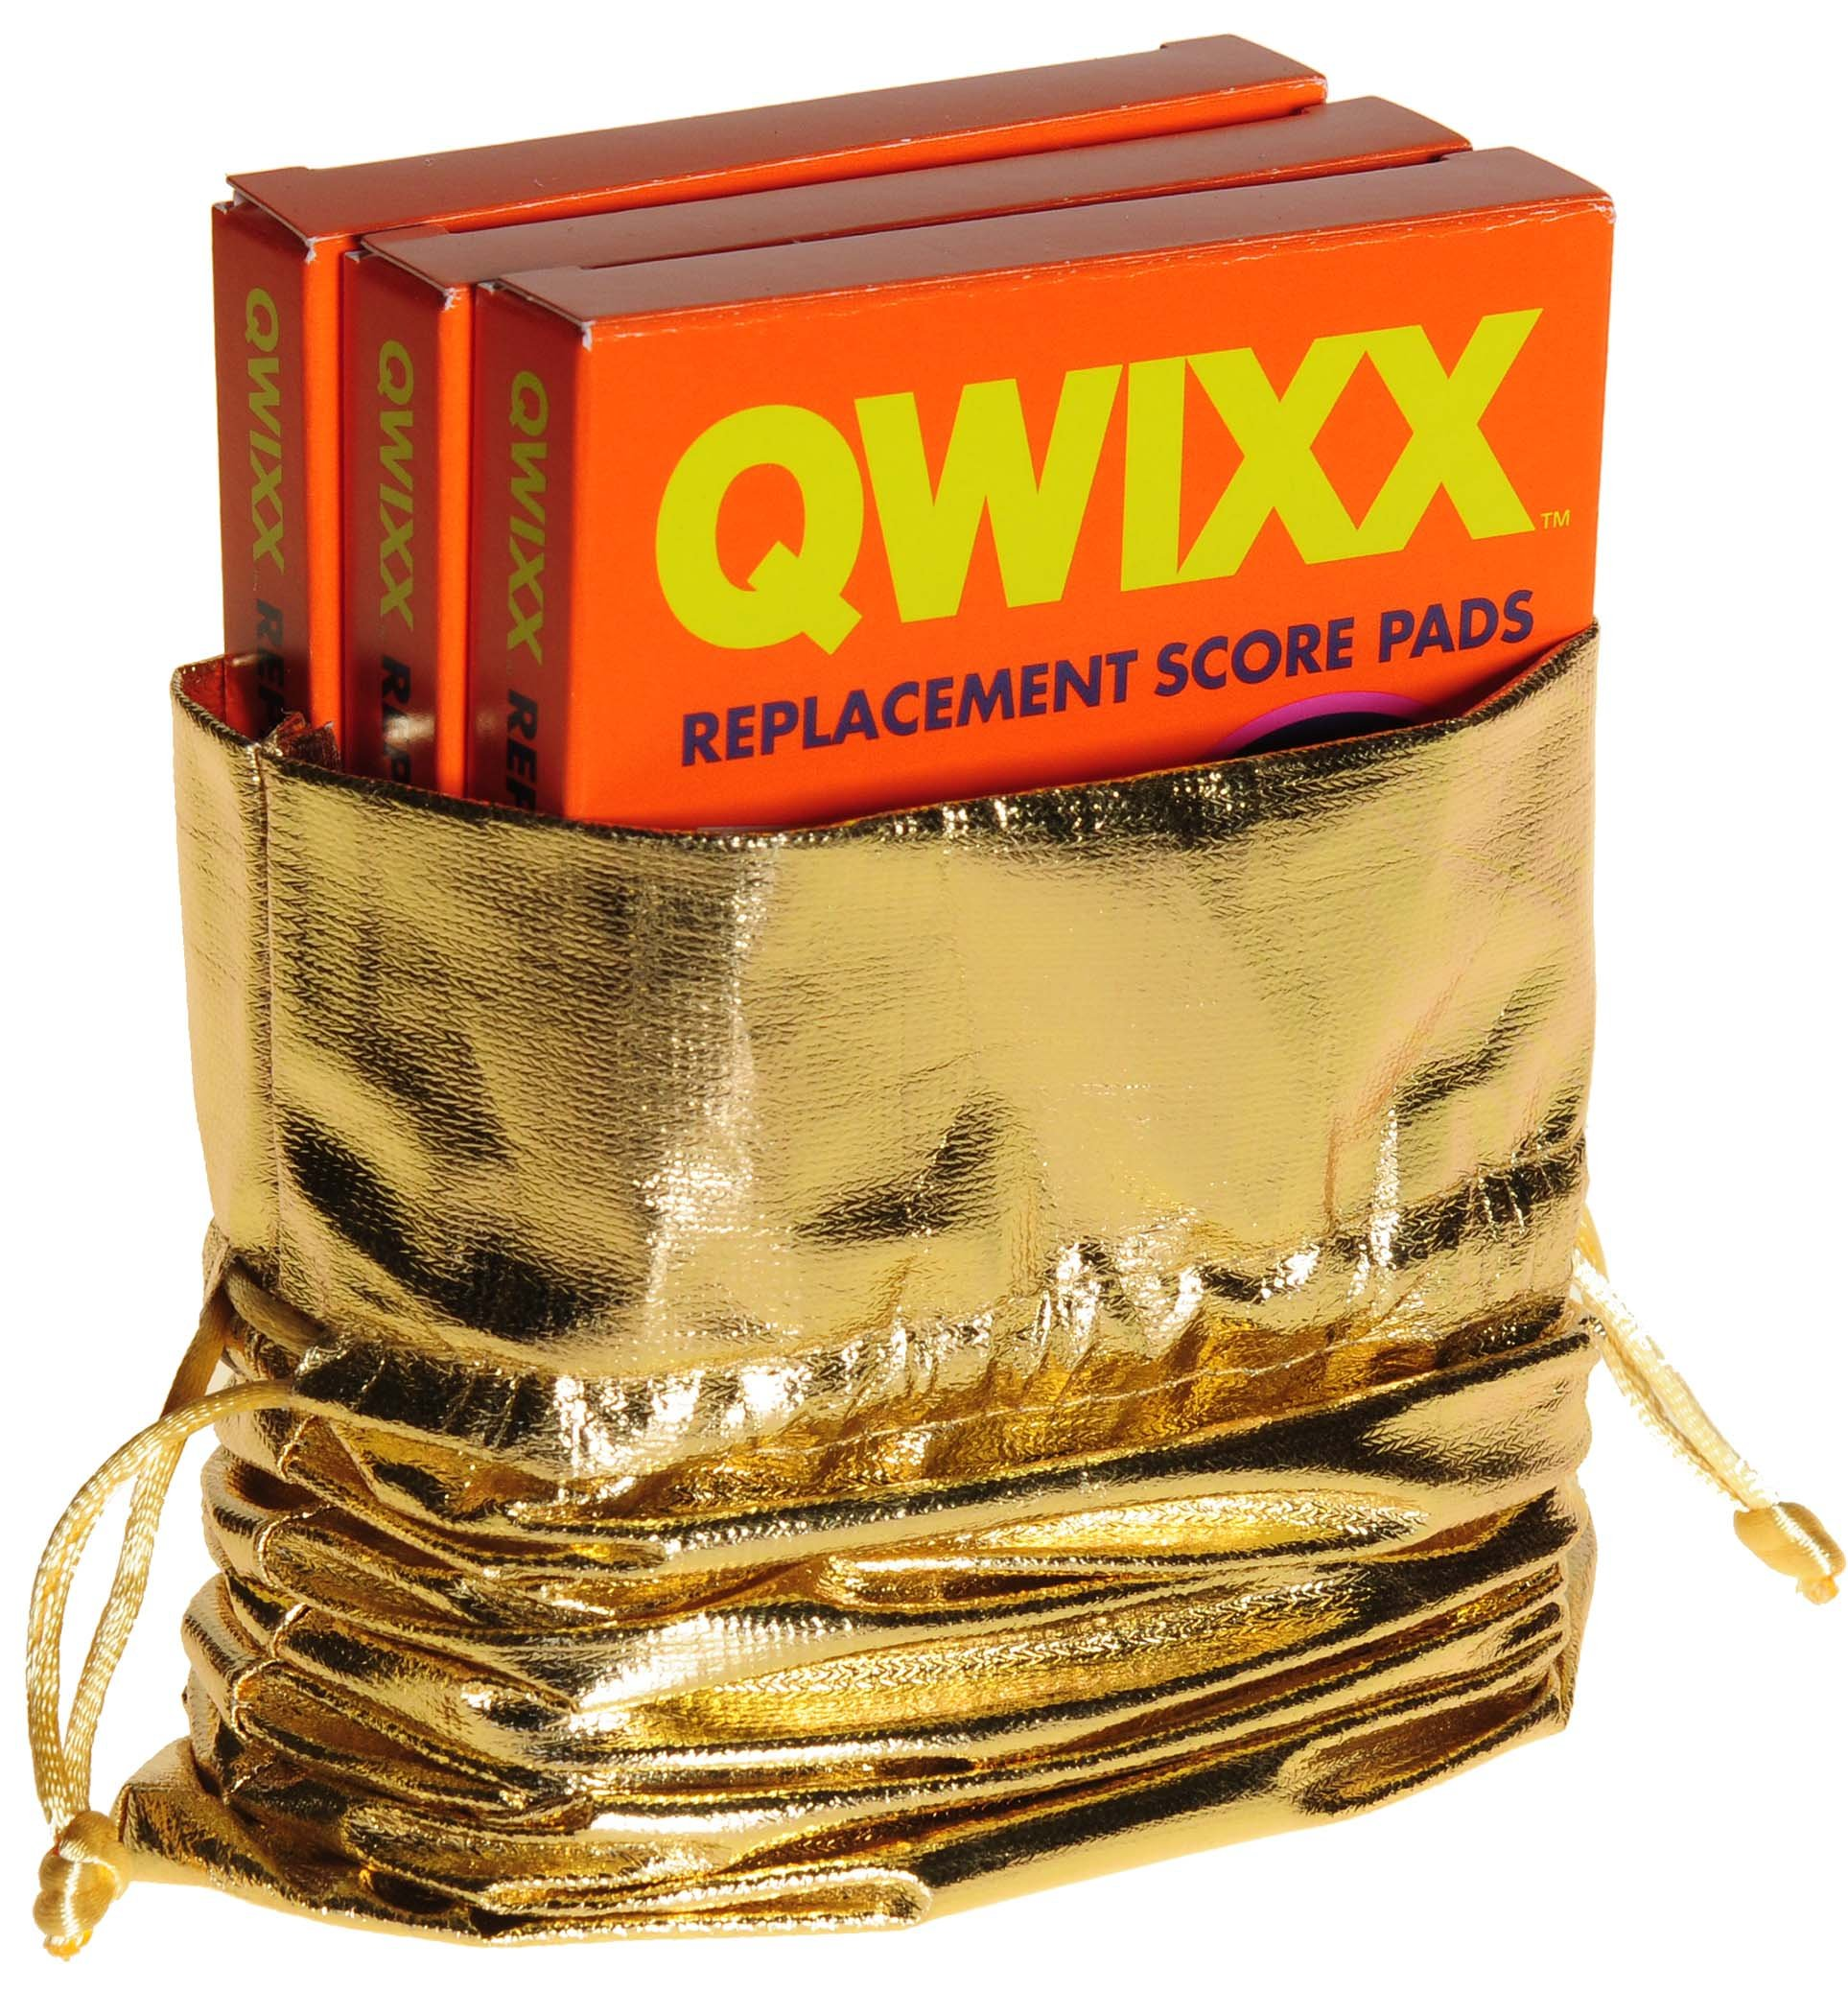 QWIXX 3 Replacement Score Pad Packs _ 600 Score Sheets _ Bonus Gold Metallic Cloth Drawstring Pouch _ Bundled Items by Deluxe Games and Puzzles (Image #5)